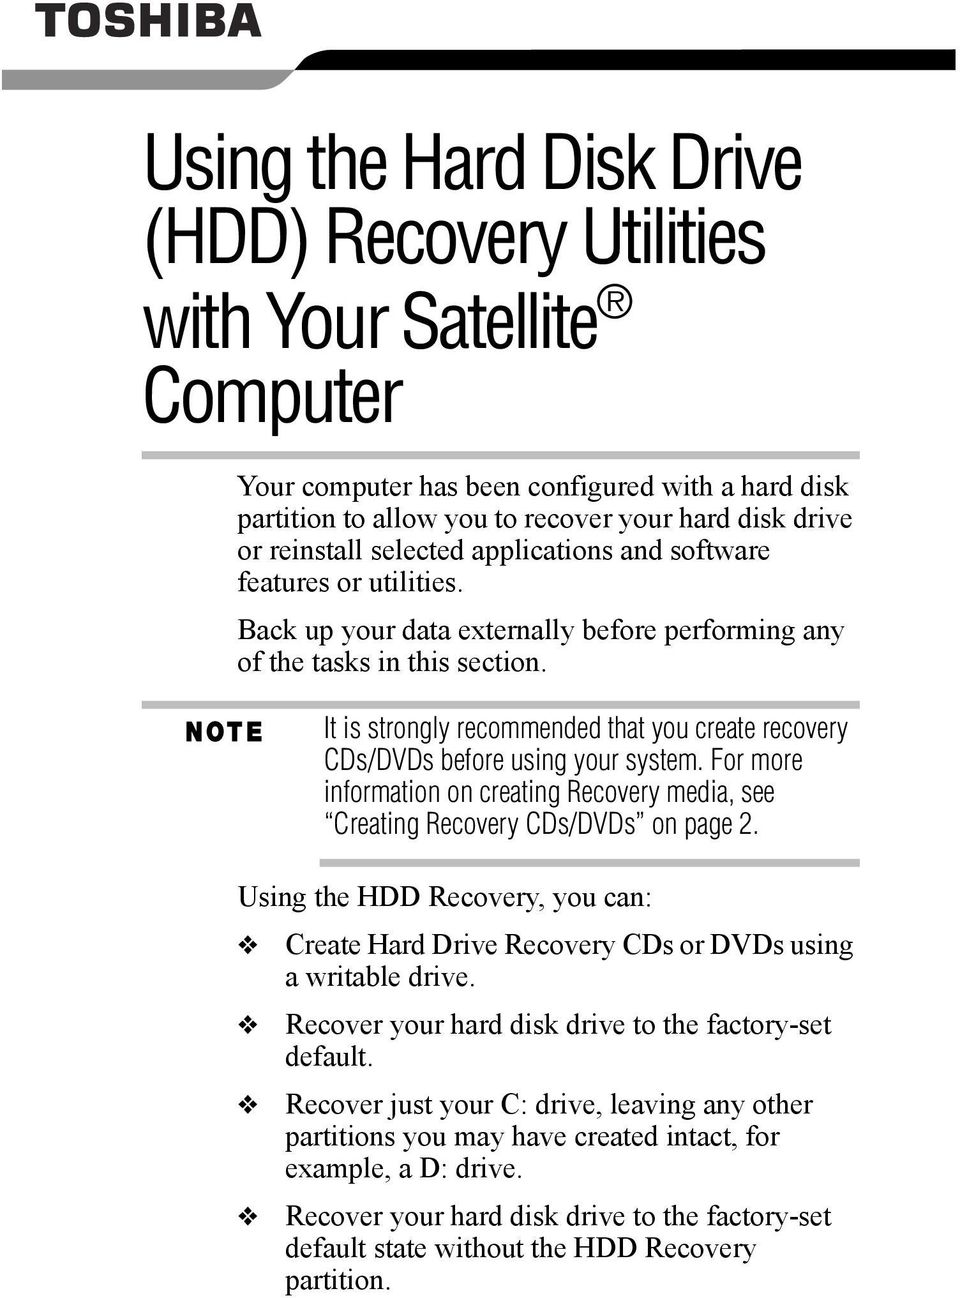 It is strongly recommended that you create recovery CDs/DVDs before using your system. For more information on creating Recovery media, see Creating Recovery CDs/DVDs on page 2.